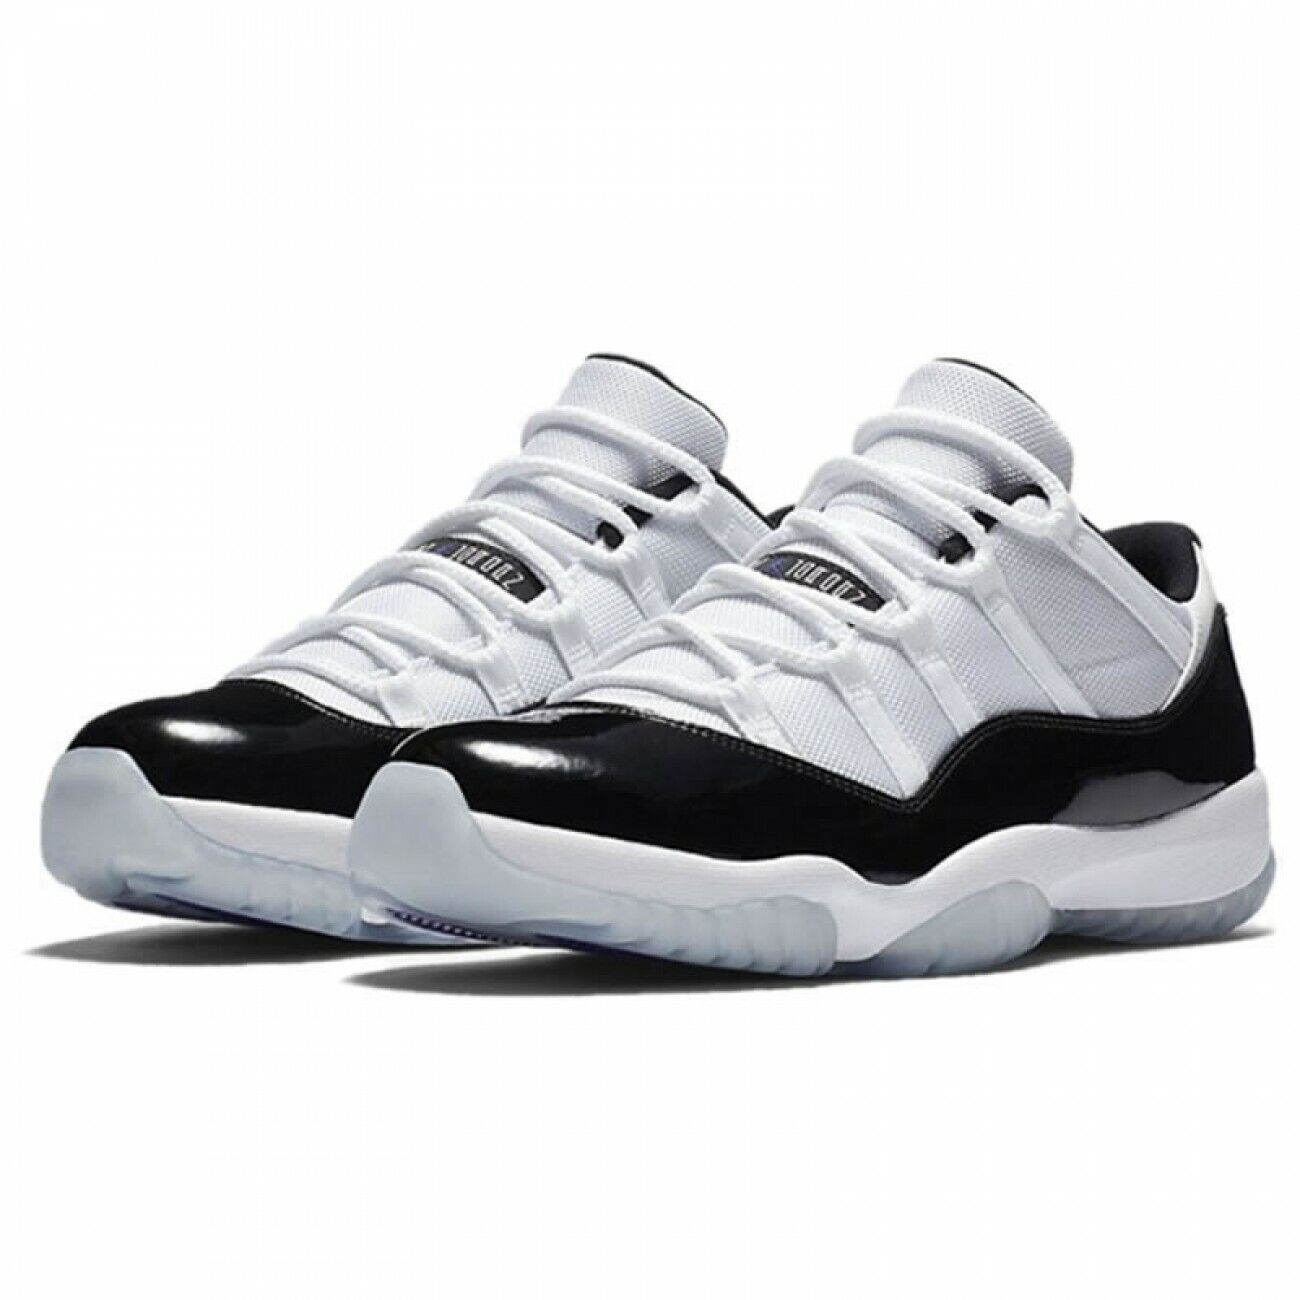 Nike Air Jordan 11 Retro Low SZ 10.5 White Black Dark Concord 528895-153